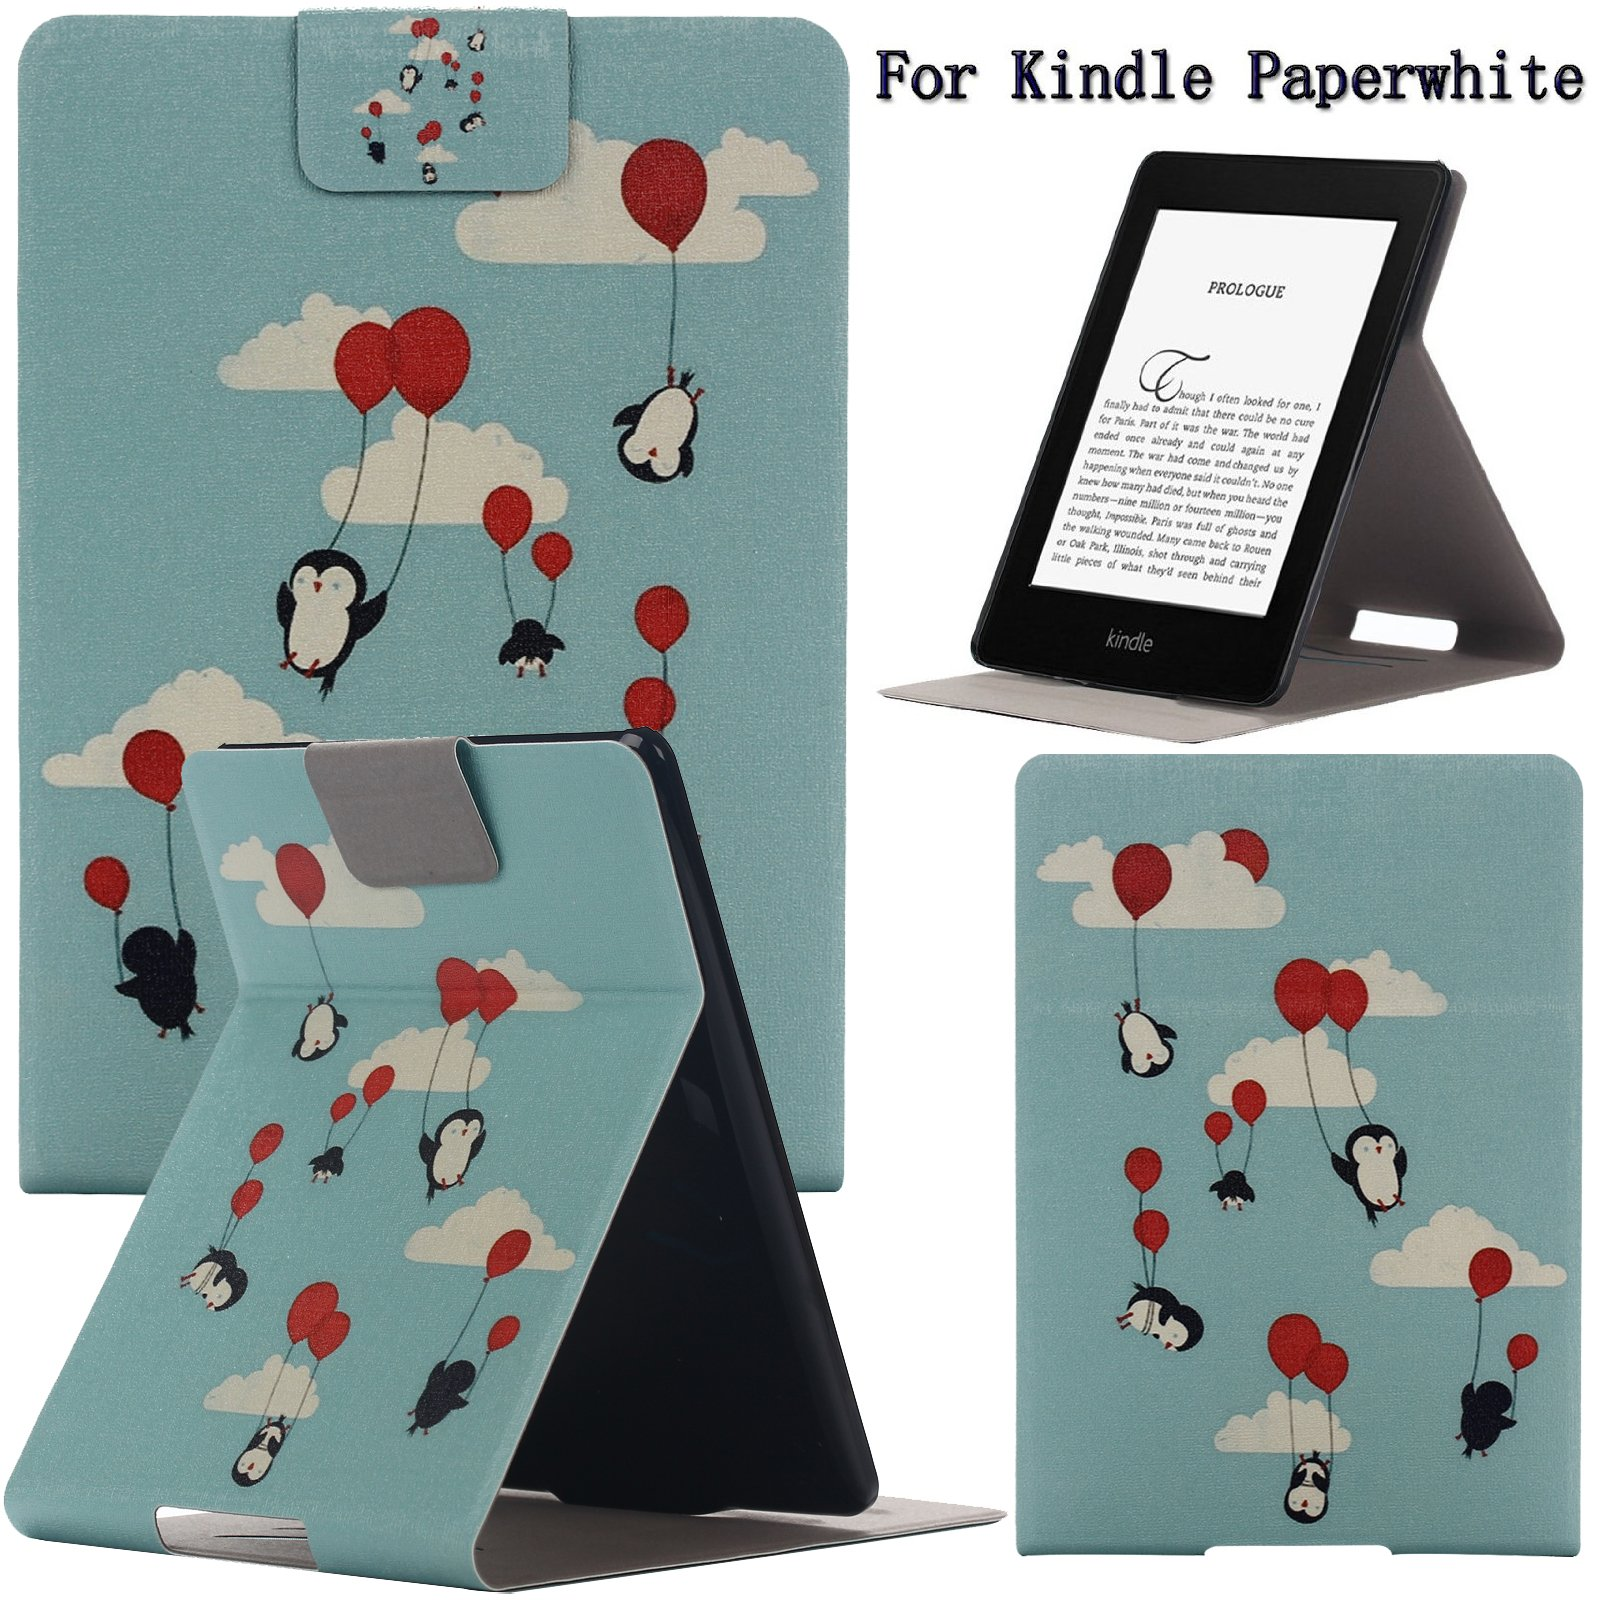 Newshine(TM) Case For Kindle Paperwhite,Ultra Slim PU Leather Smart Case Build in Magnetic with [Auto Sleep/Wake Function] for Amazon Kindle Paperwhite 2015 2013 2012 6'' E-reader (Flying Penguins) by NewShine